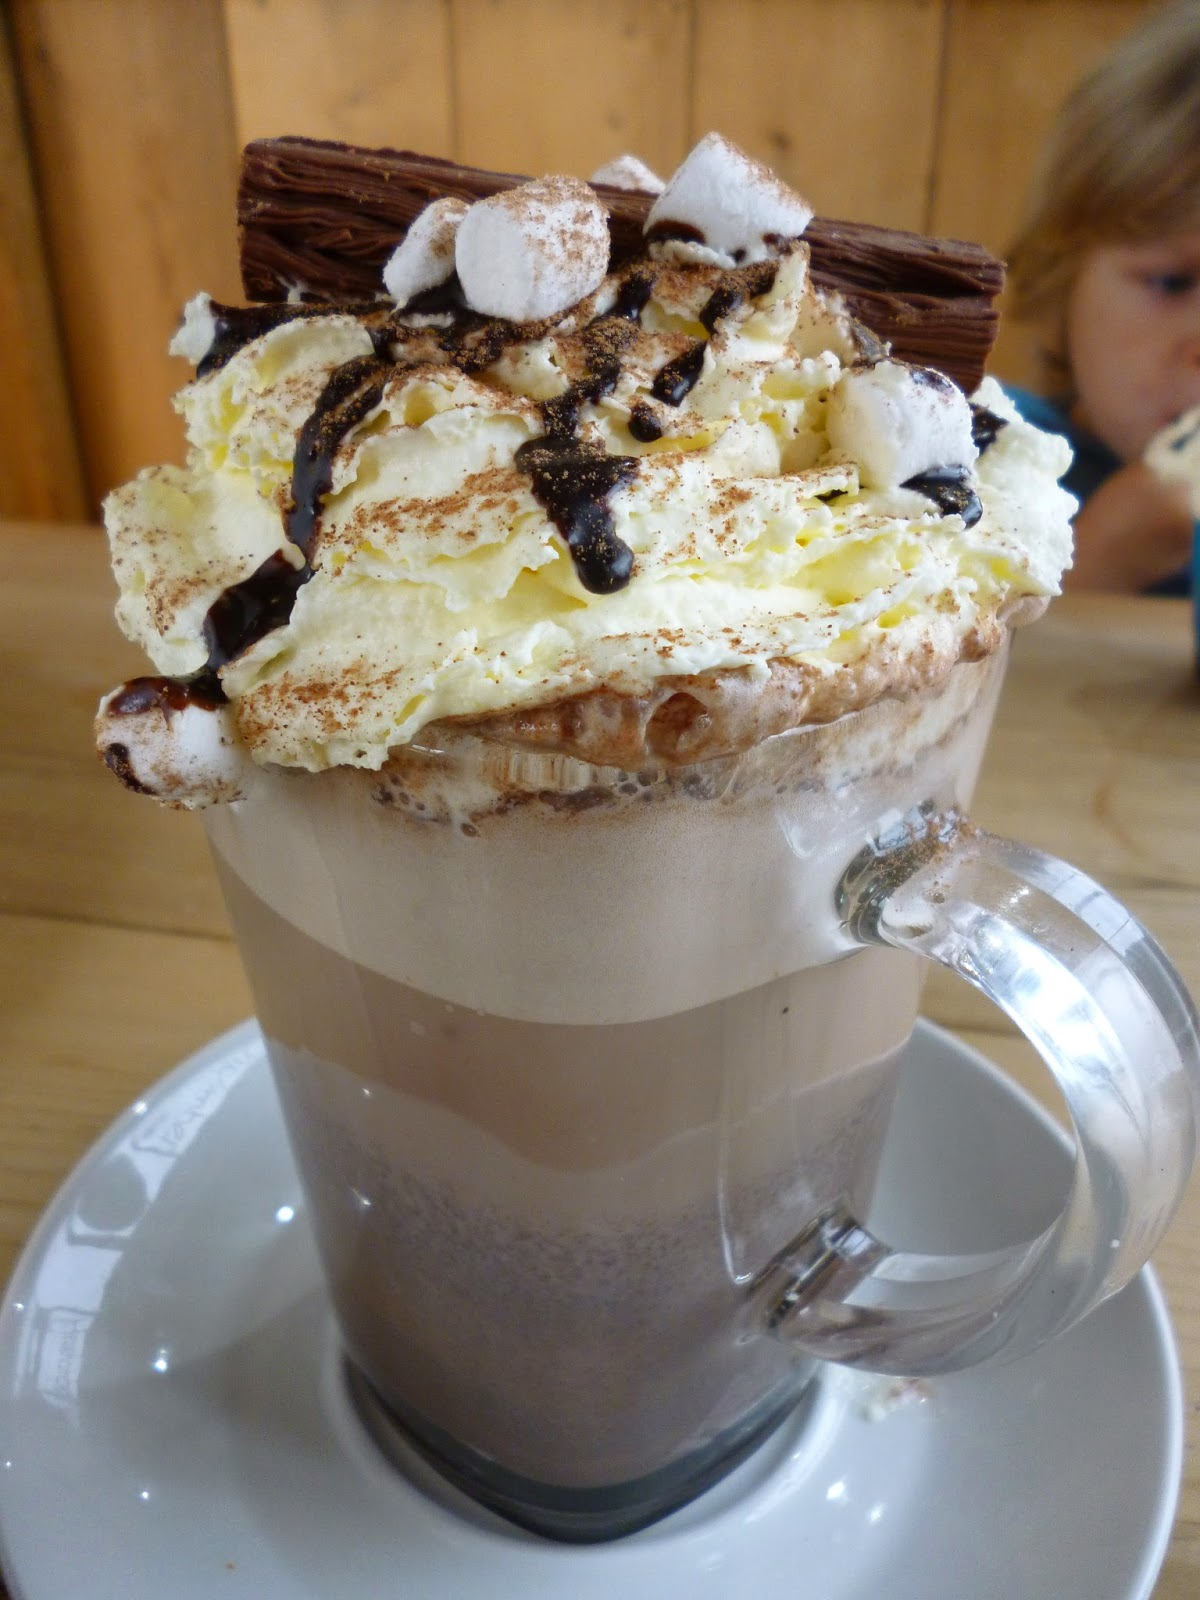 ... best ever hot chocolate the best hot chocolate make the best homemade